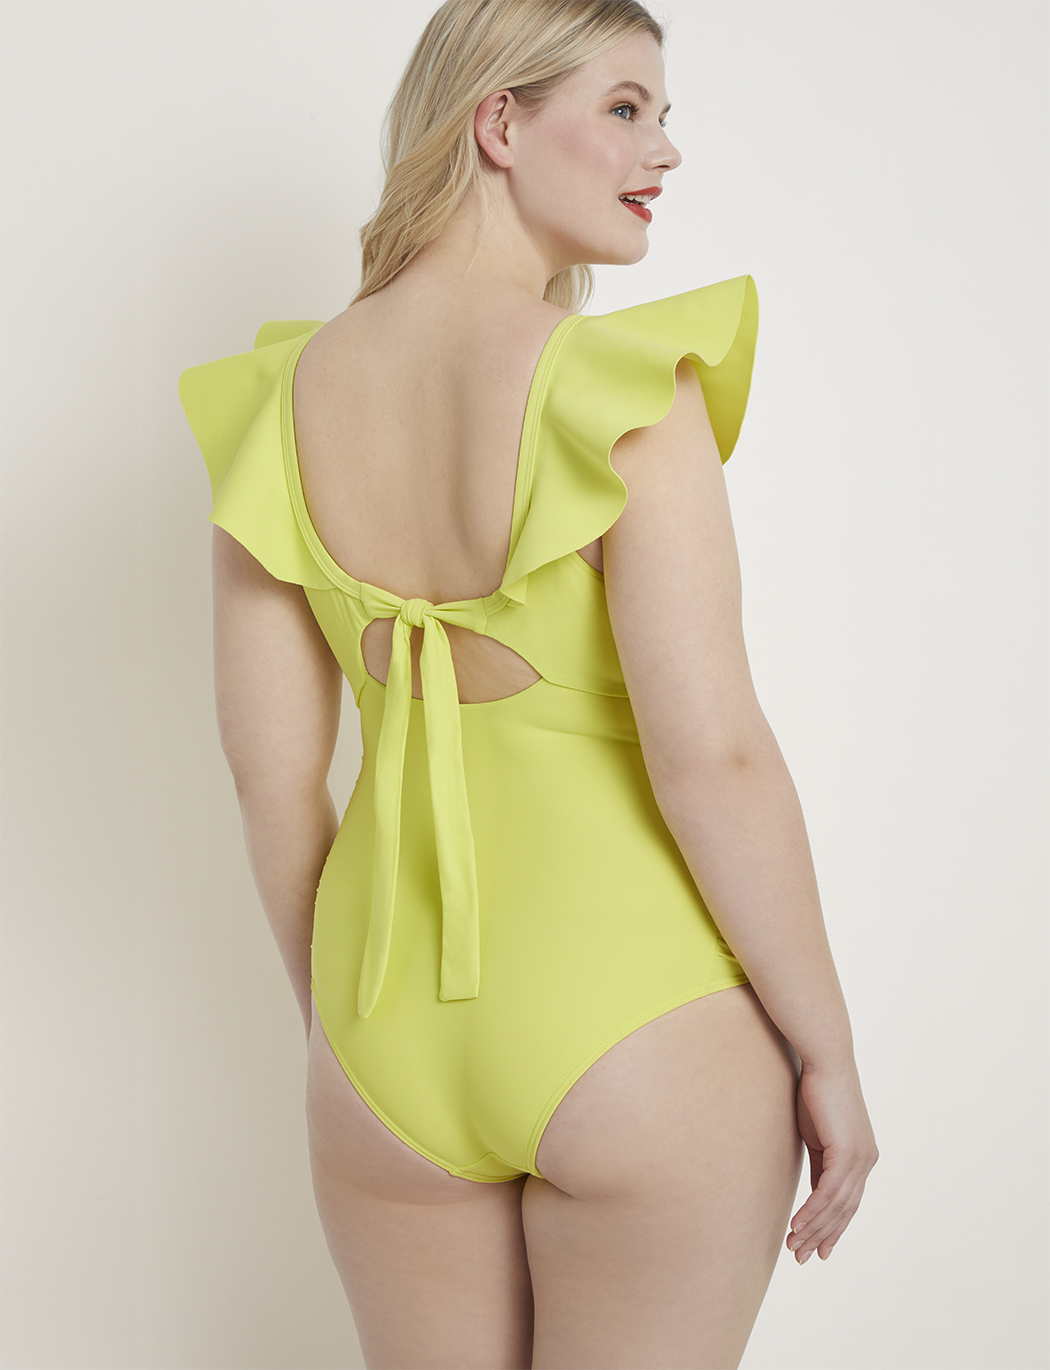 Drama Ruffle One Piece Swimsuit